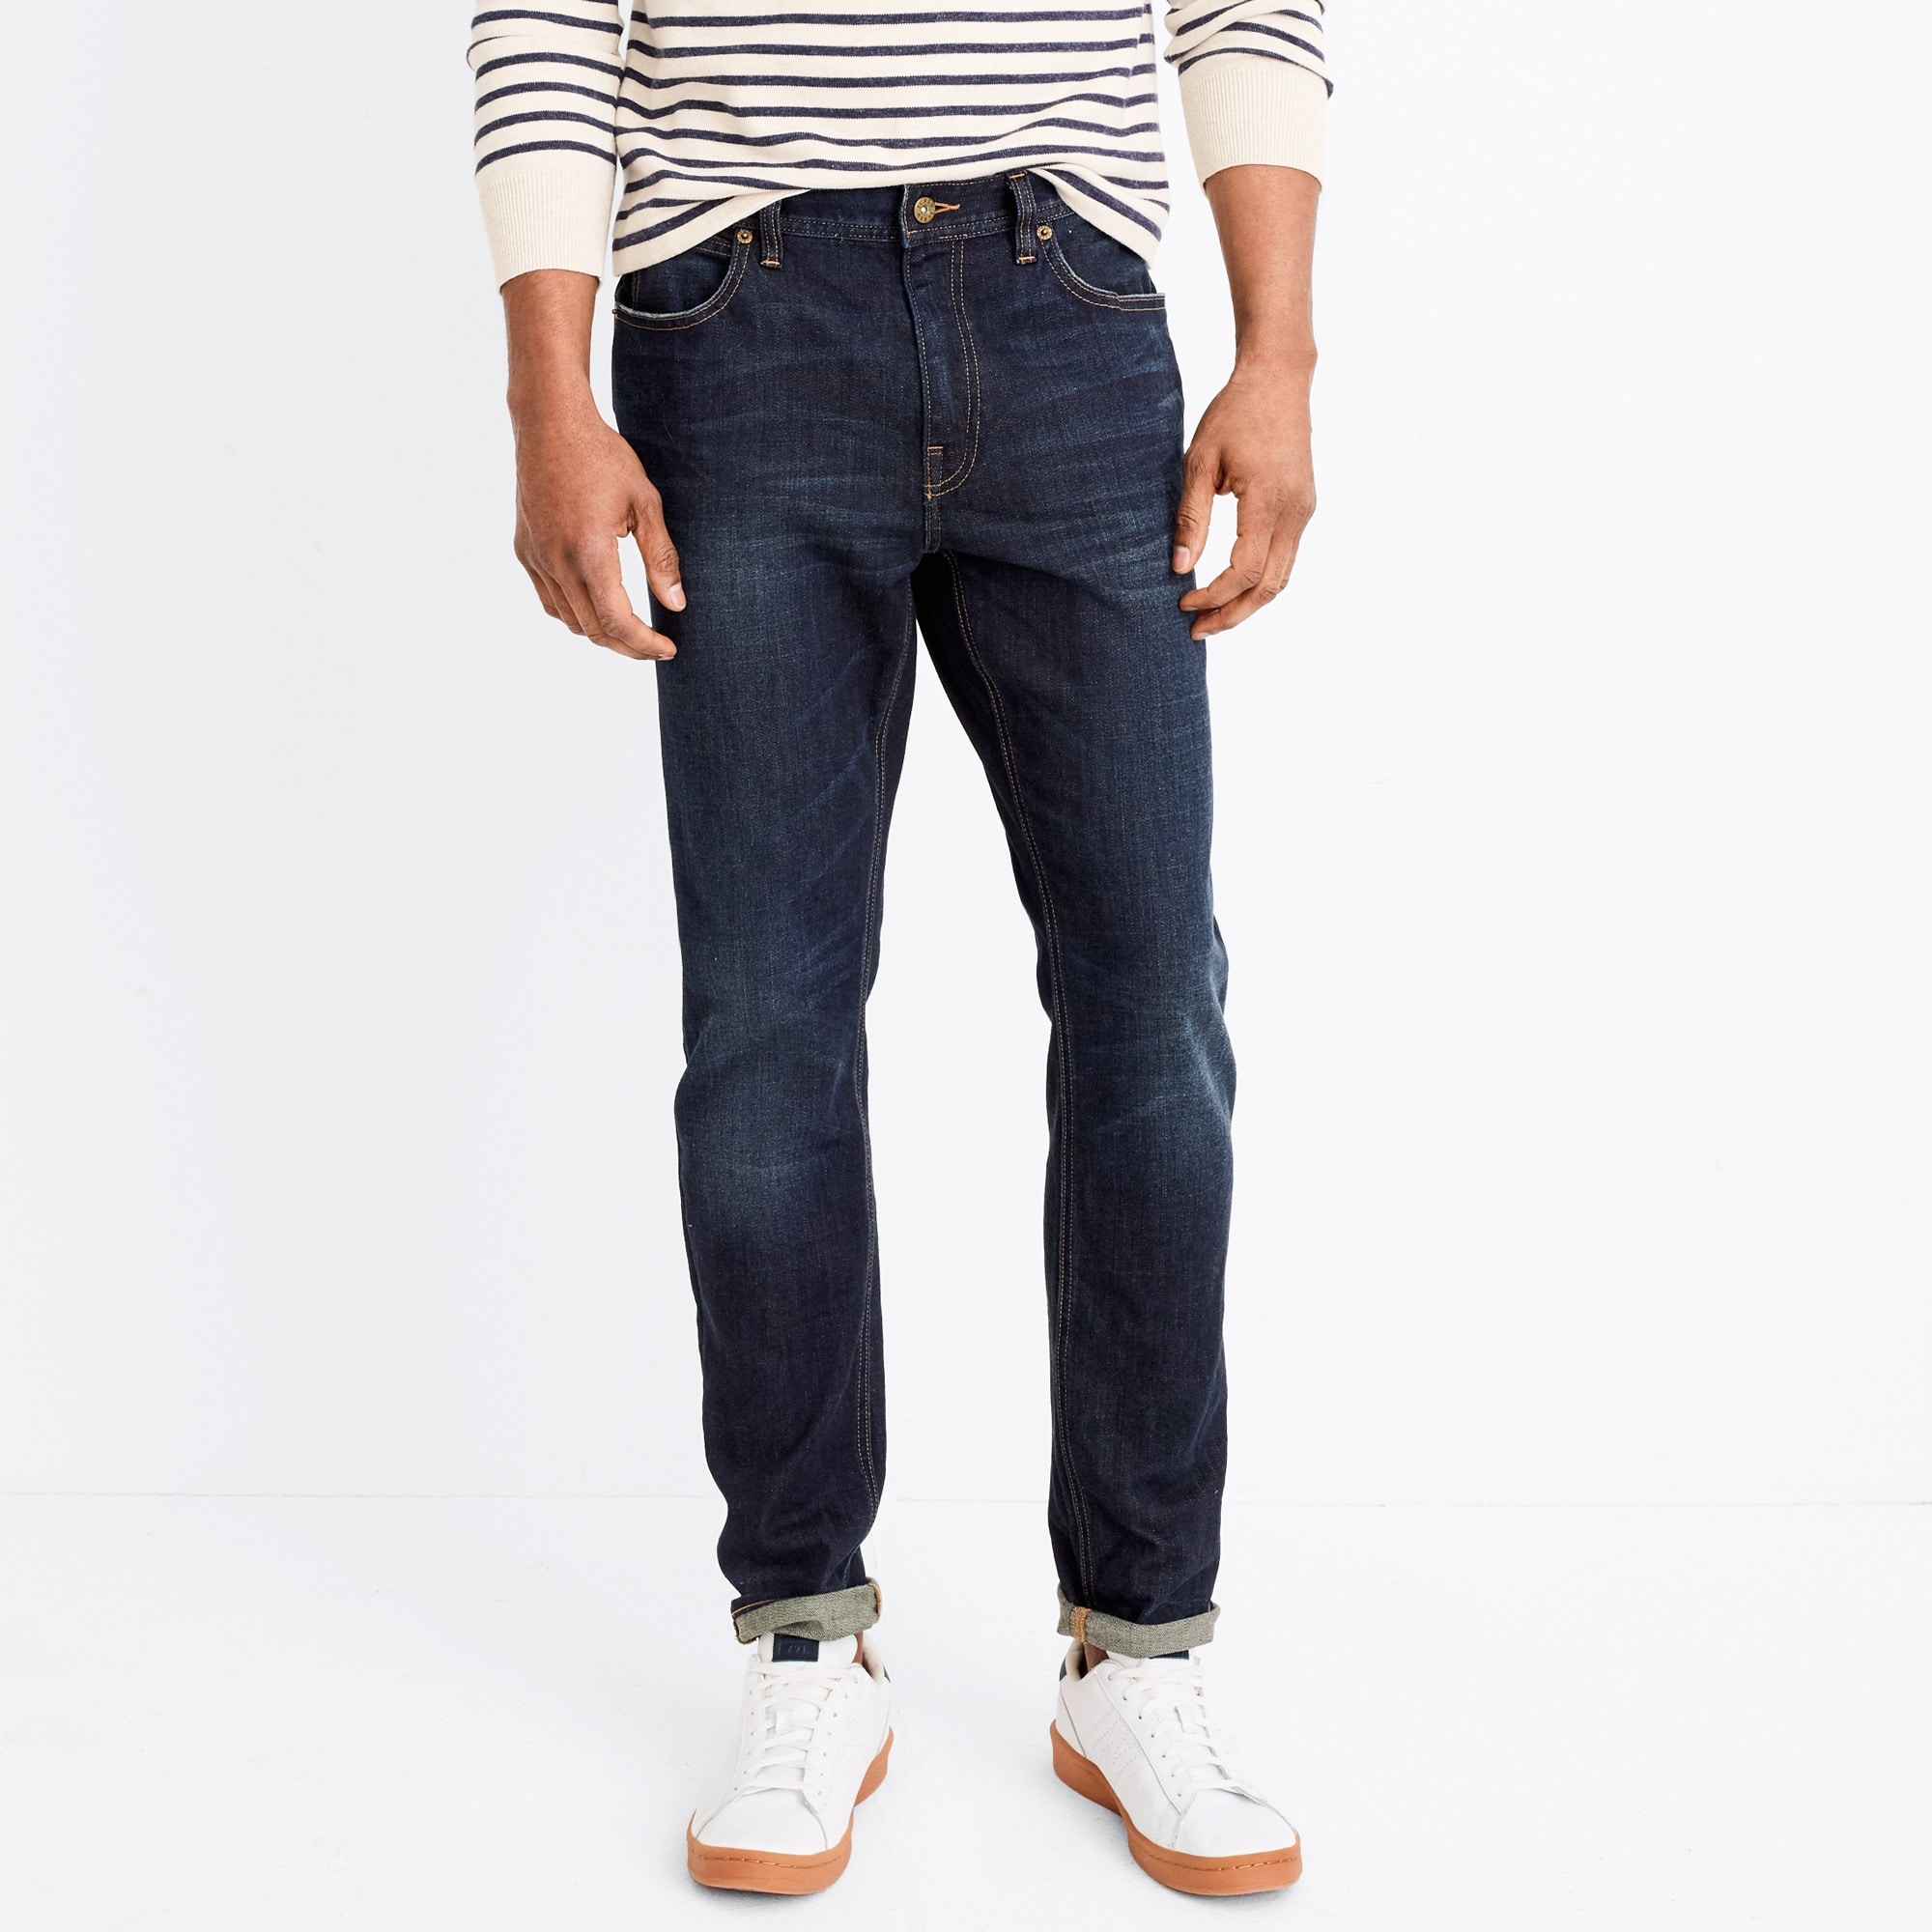 mens J.Crew Mercantile Straight-fit flex jean in Walker wash